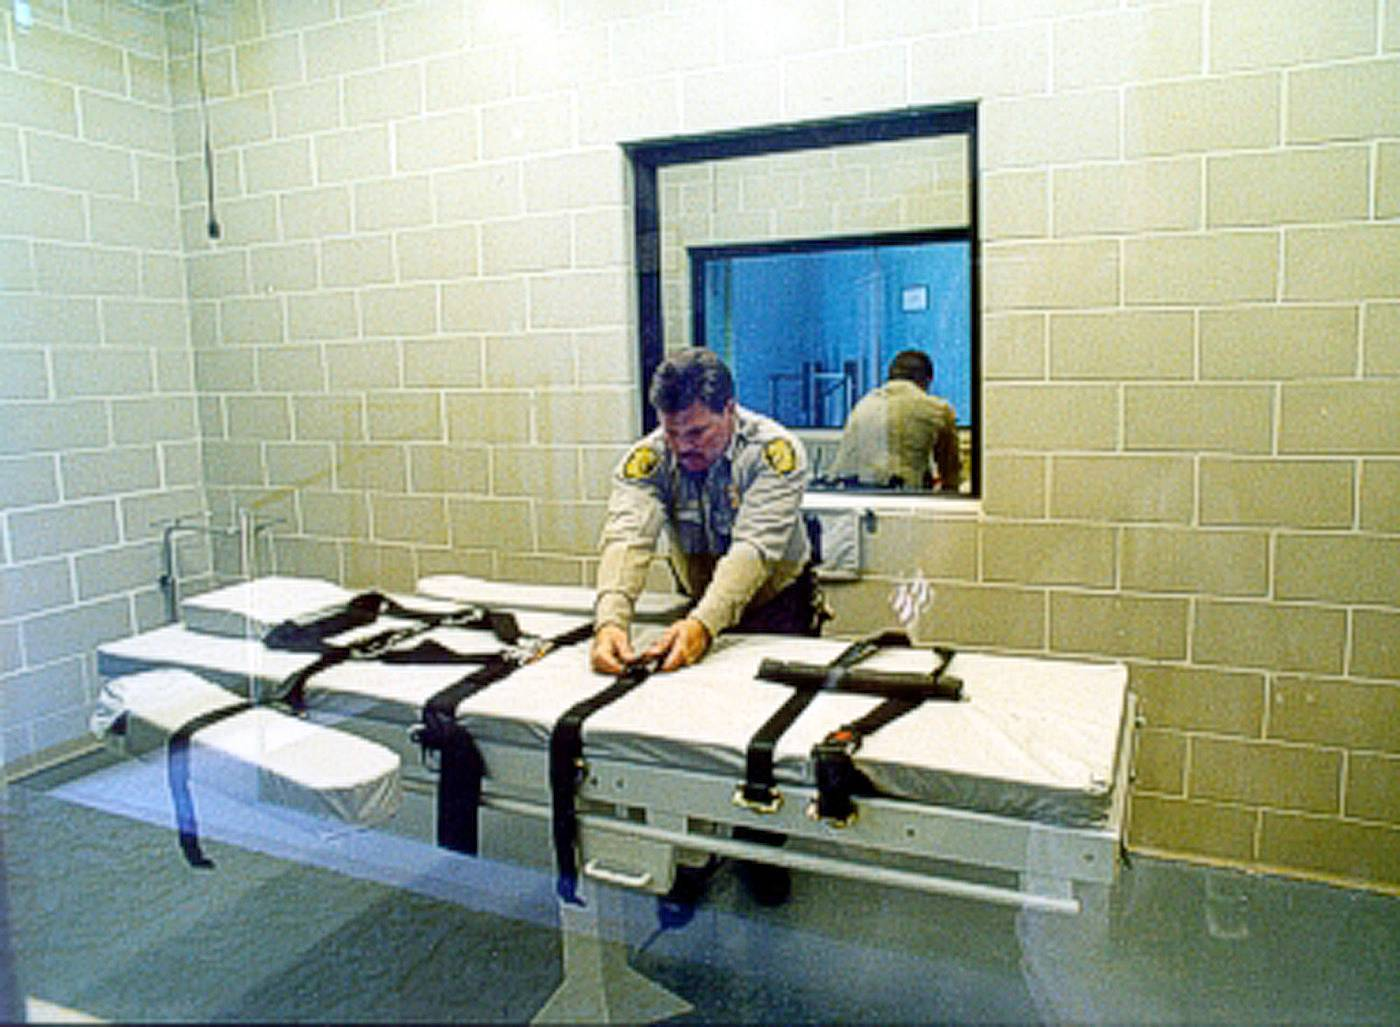 In this undated file photo provided by the Arizona Department of Corrections, an unidentified Arizona Corrections Officer adjusts the straps on the gurney used for lethal injections at the Arizona State Prison at Florence, Ariz. The prolonged execution this week of an Arizona death row inmate with a new, two-drug combination highlights the patchwork approach states have been forced to take with lethal injection drugs, with the types, combinations and dosages varying widely.